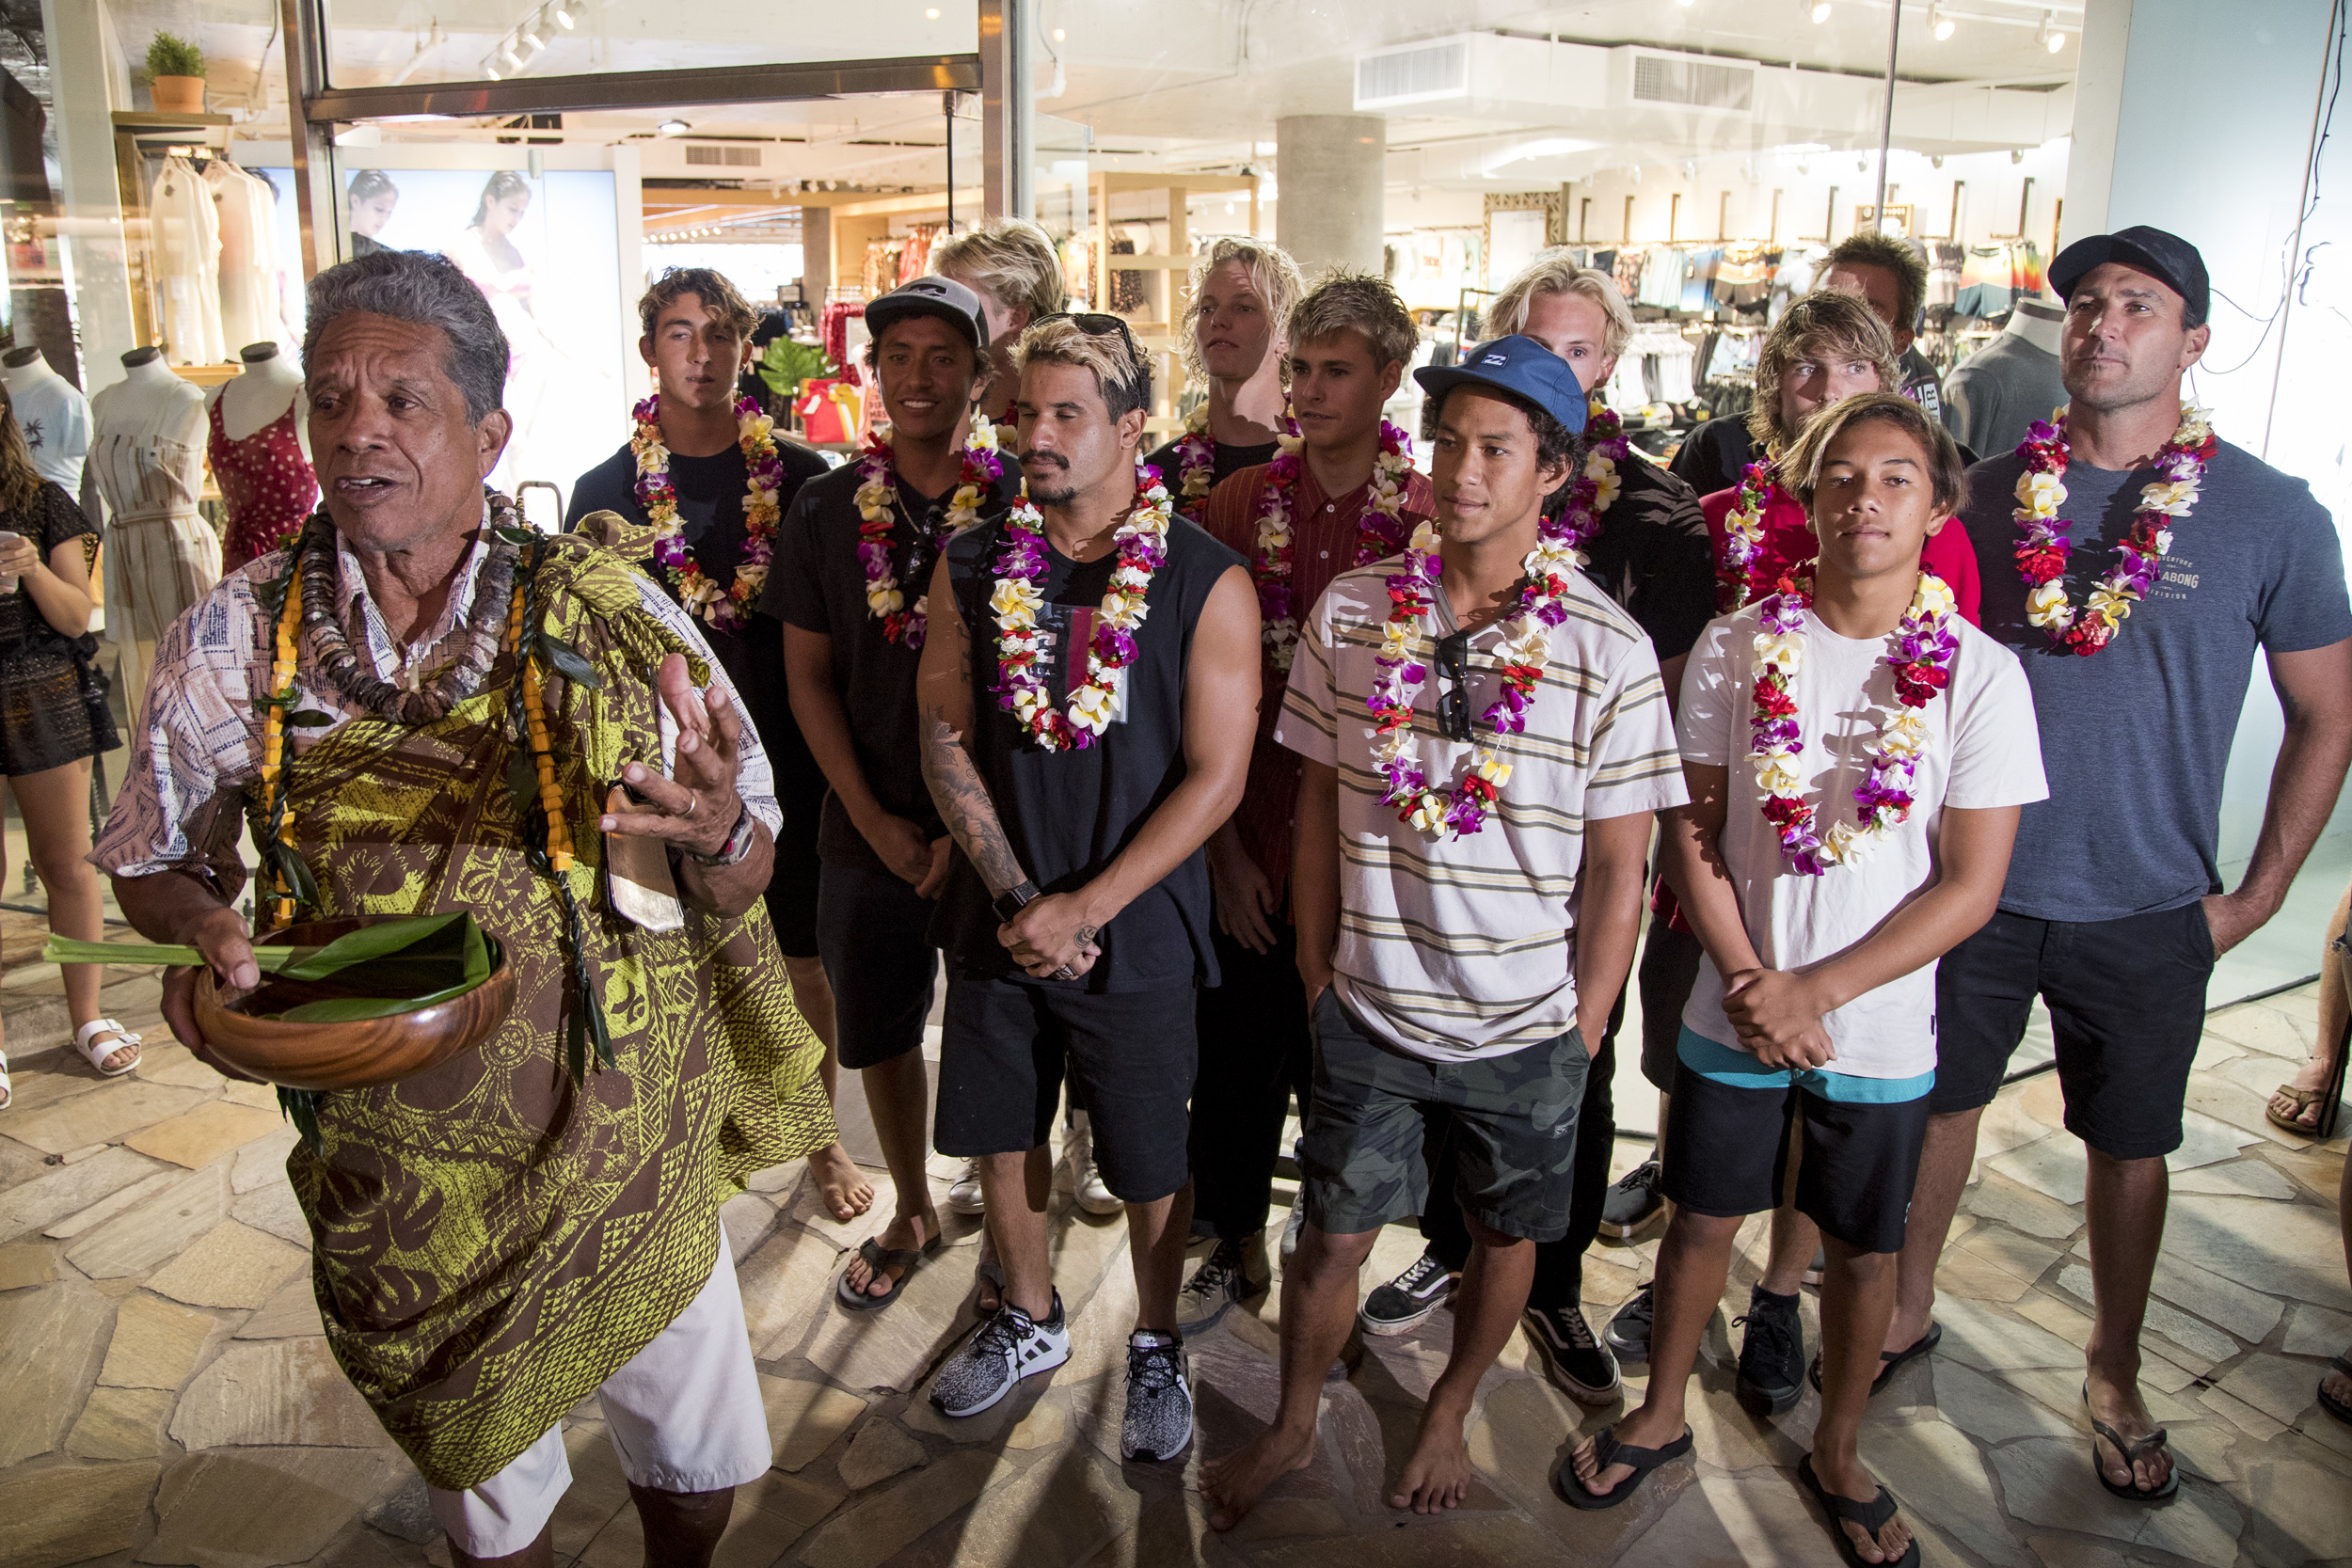 BillabongGrand Re-Opening - Iconic Surf Brand, Billabong, to Reopen Flagship Store at the Hyatt Waikiki With Focus on Experiential Retail and Supporting Local Businesses and Athletes